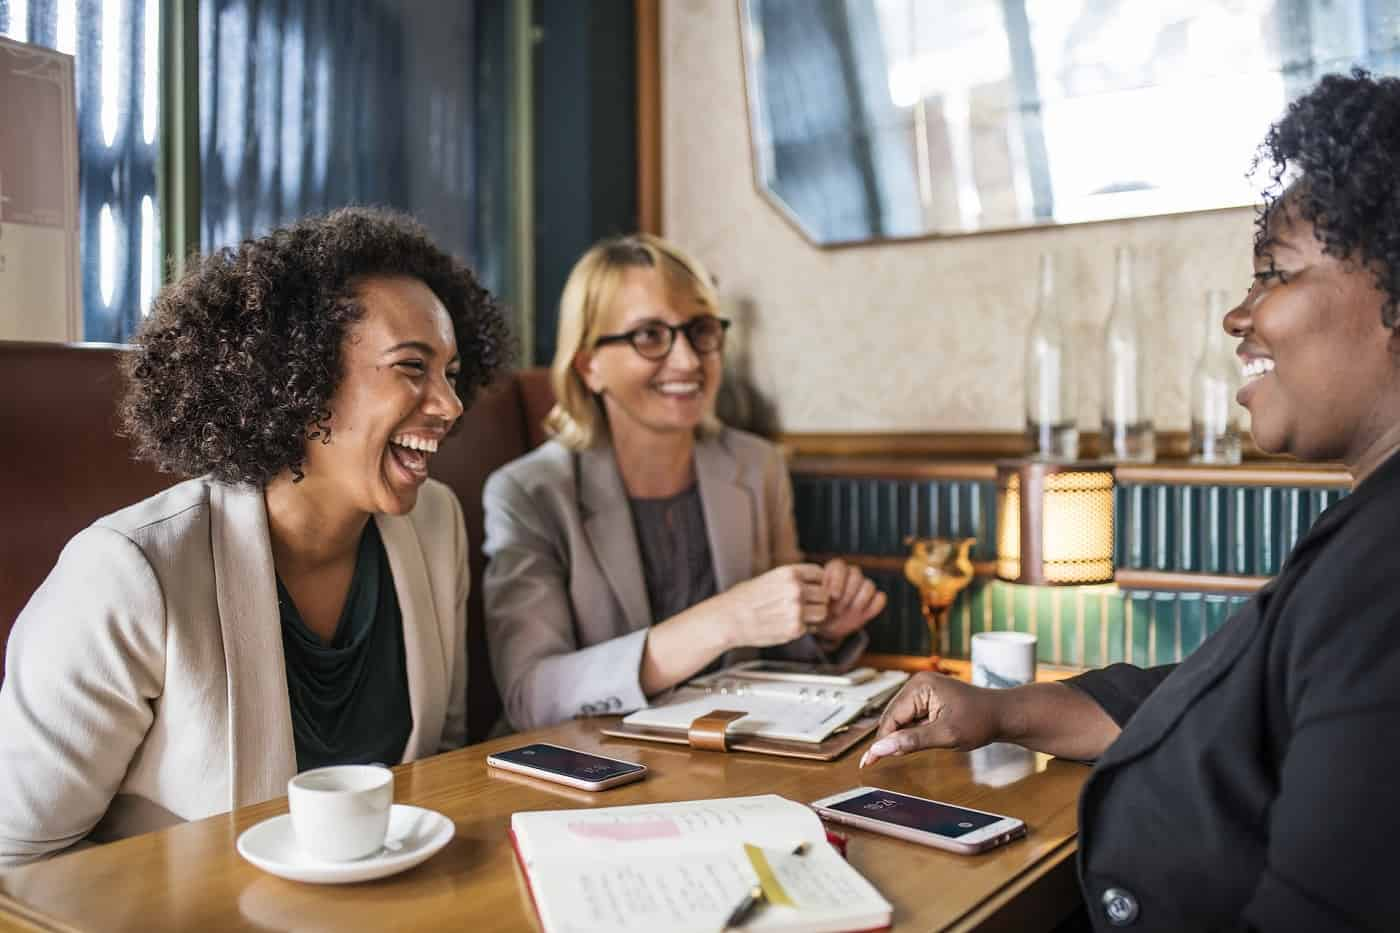 Three women talking and laughing over coffee